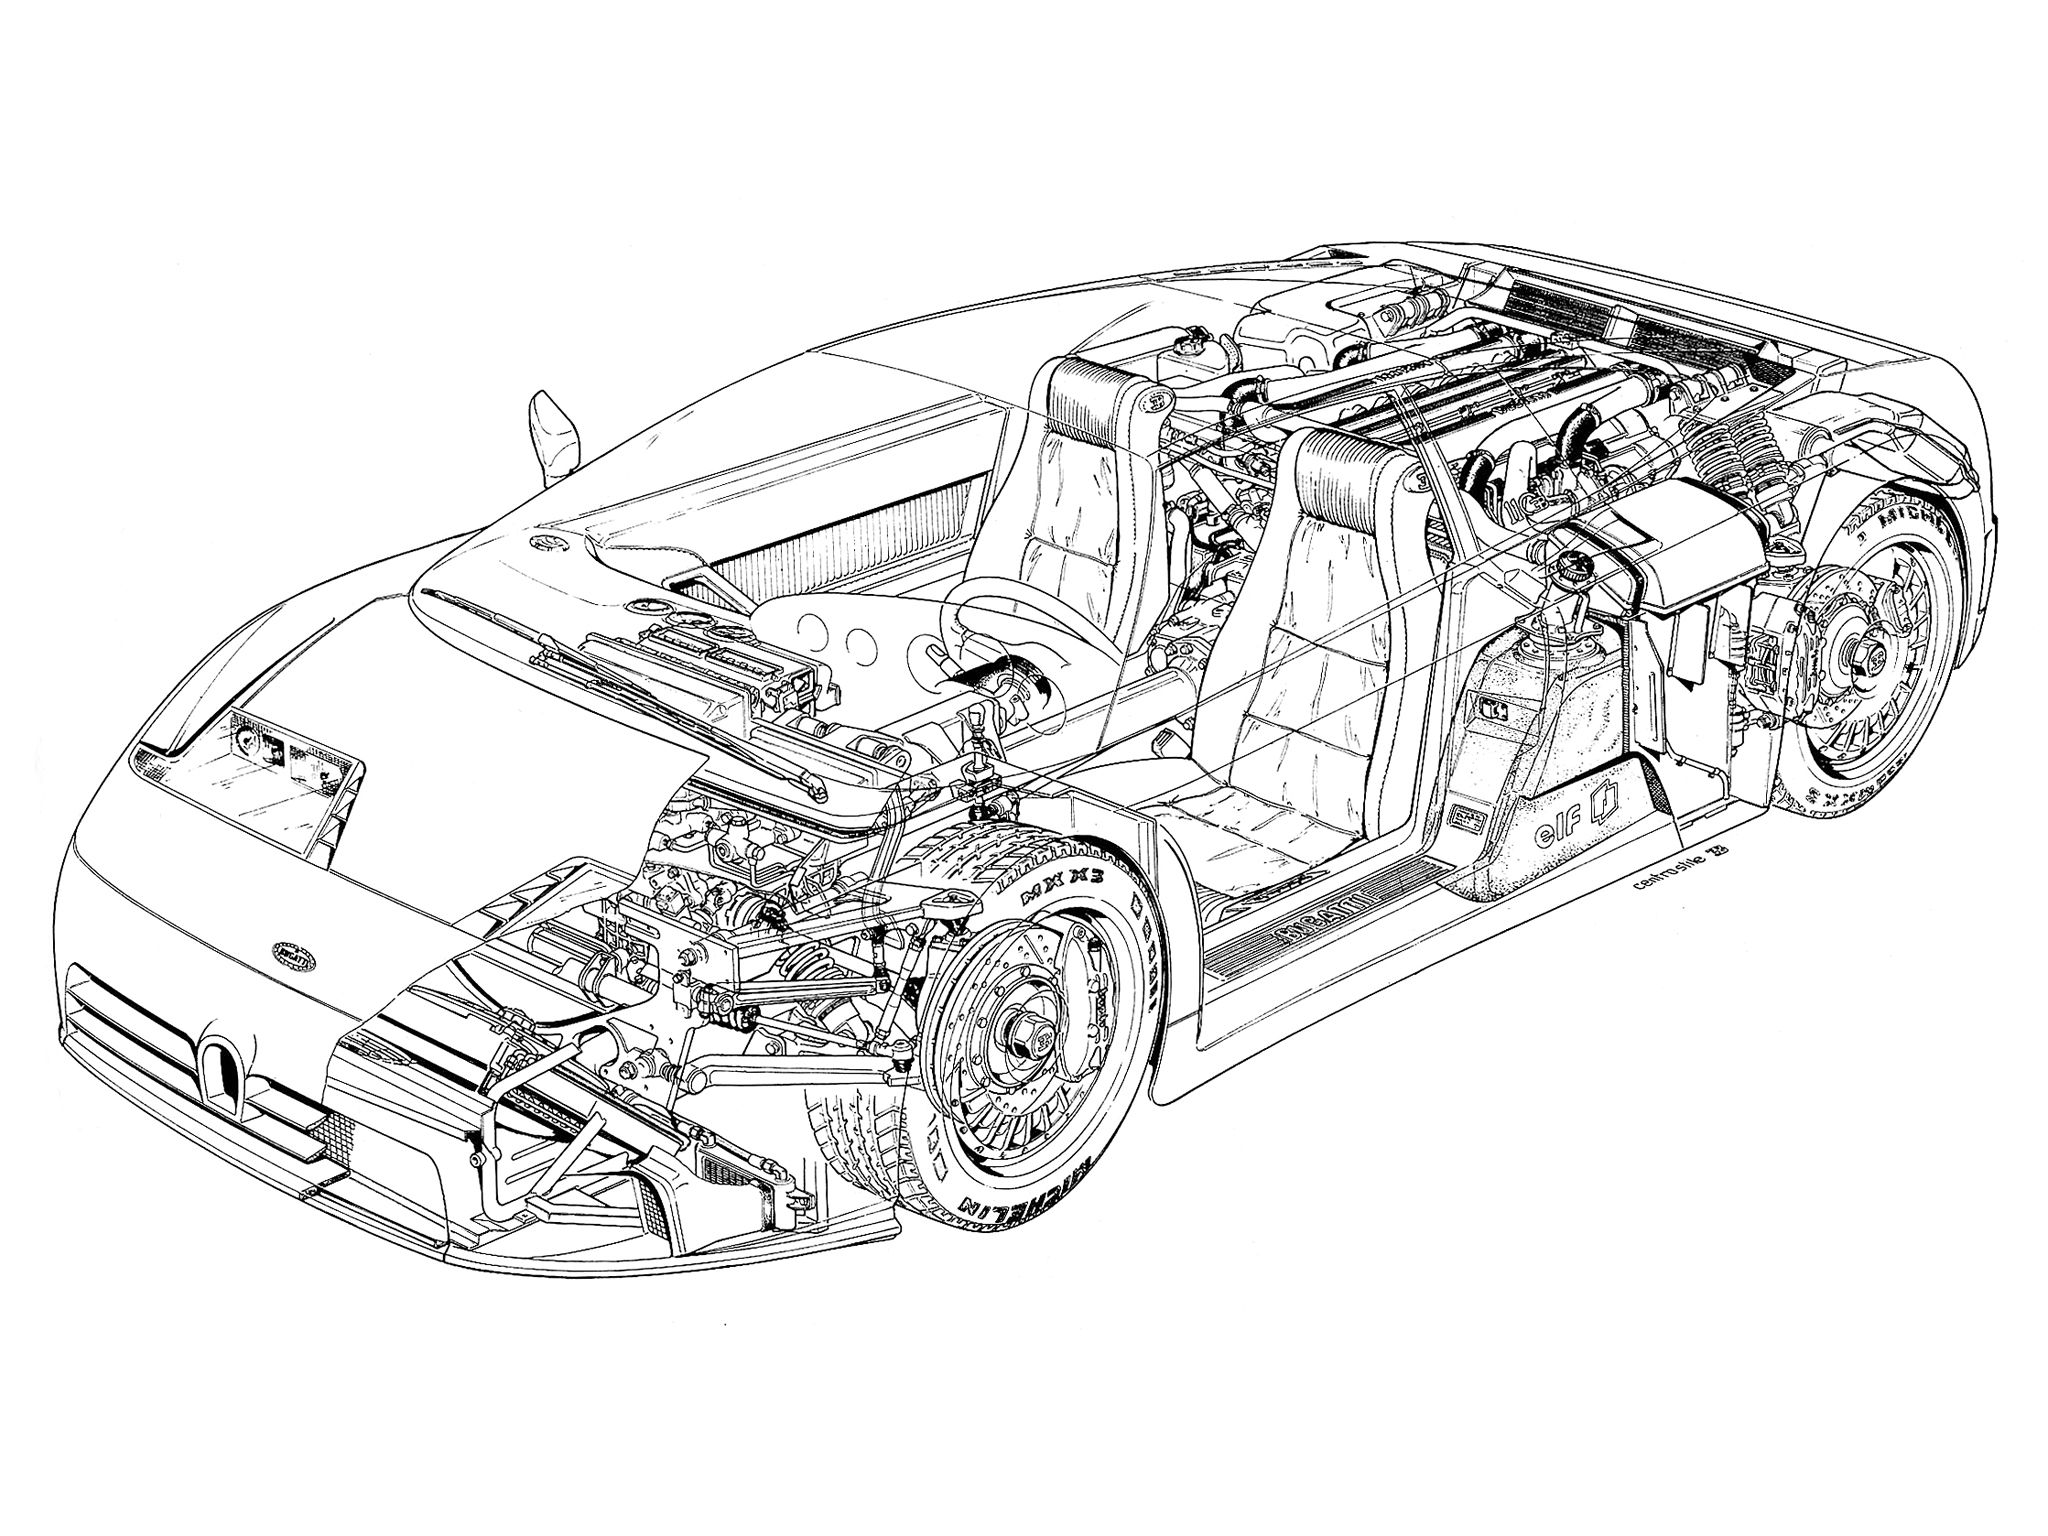 1992 1995 bugatti eb110 gt illustrator's name illegible